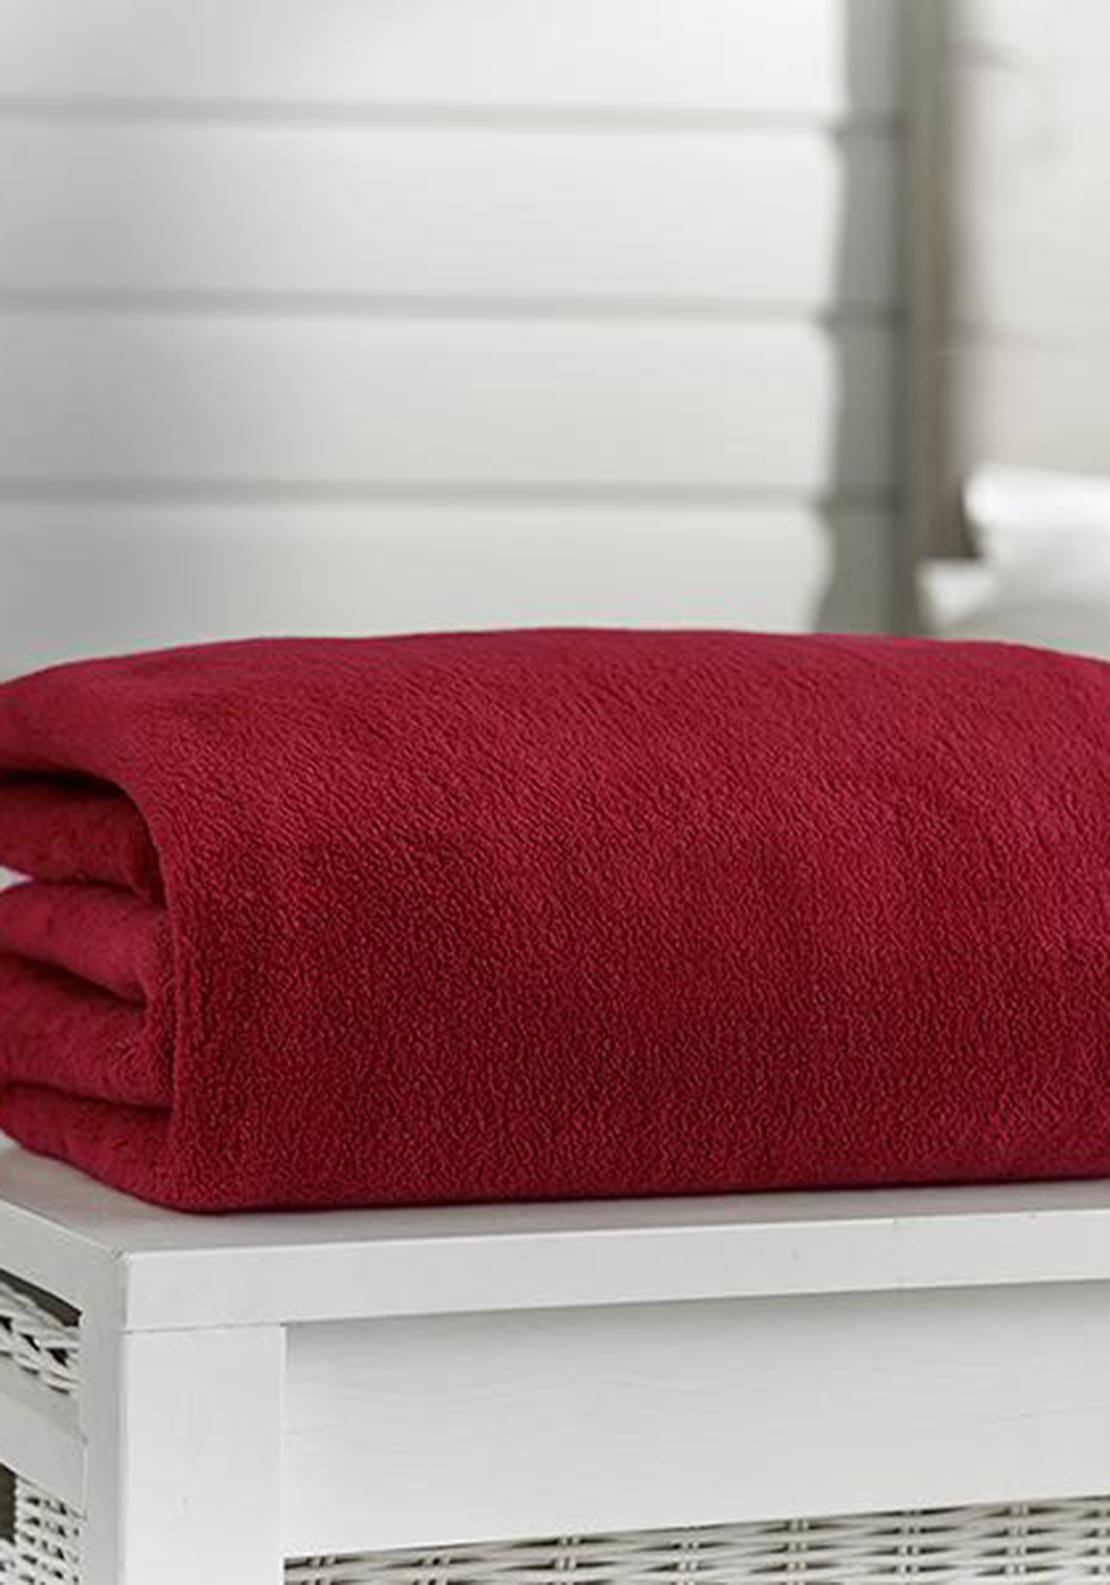 Deyong's Snuggle Touch Deluxe Throw, Oxblood